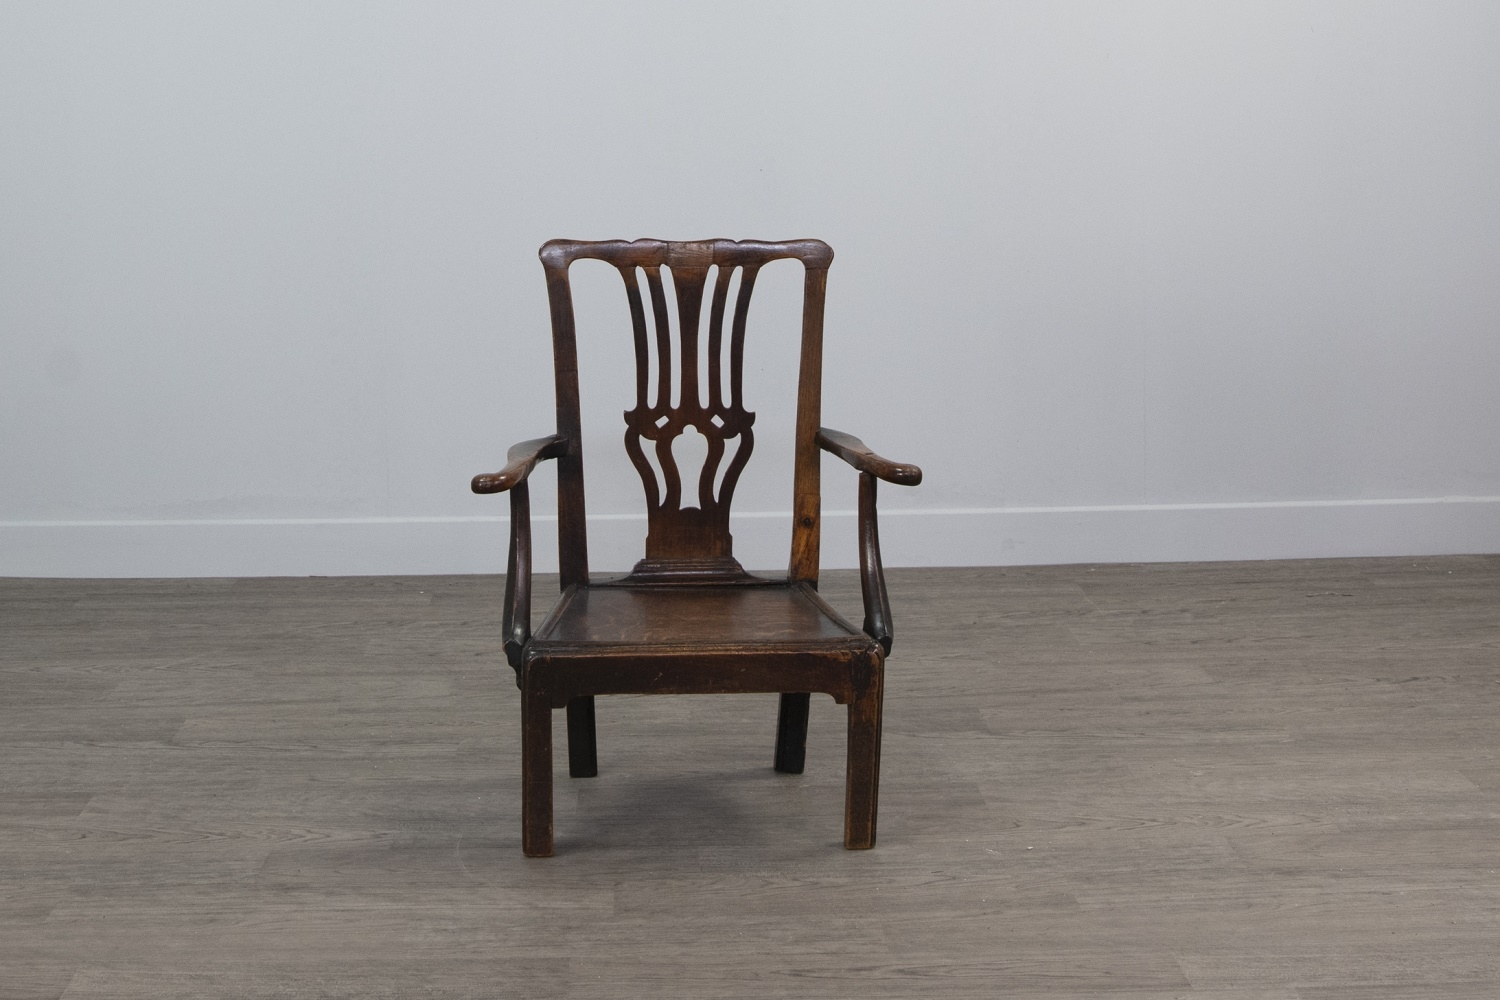 A GEORGE III CHILDS' ELM AND OAK OPEN ELBOW CHAIR